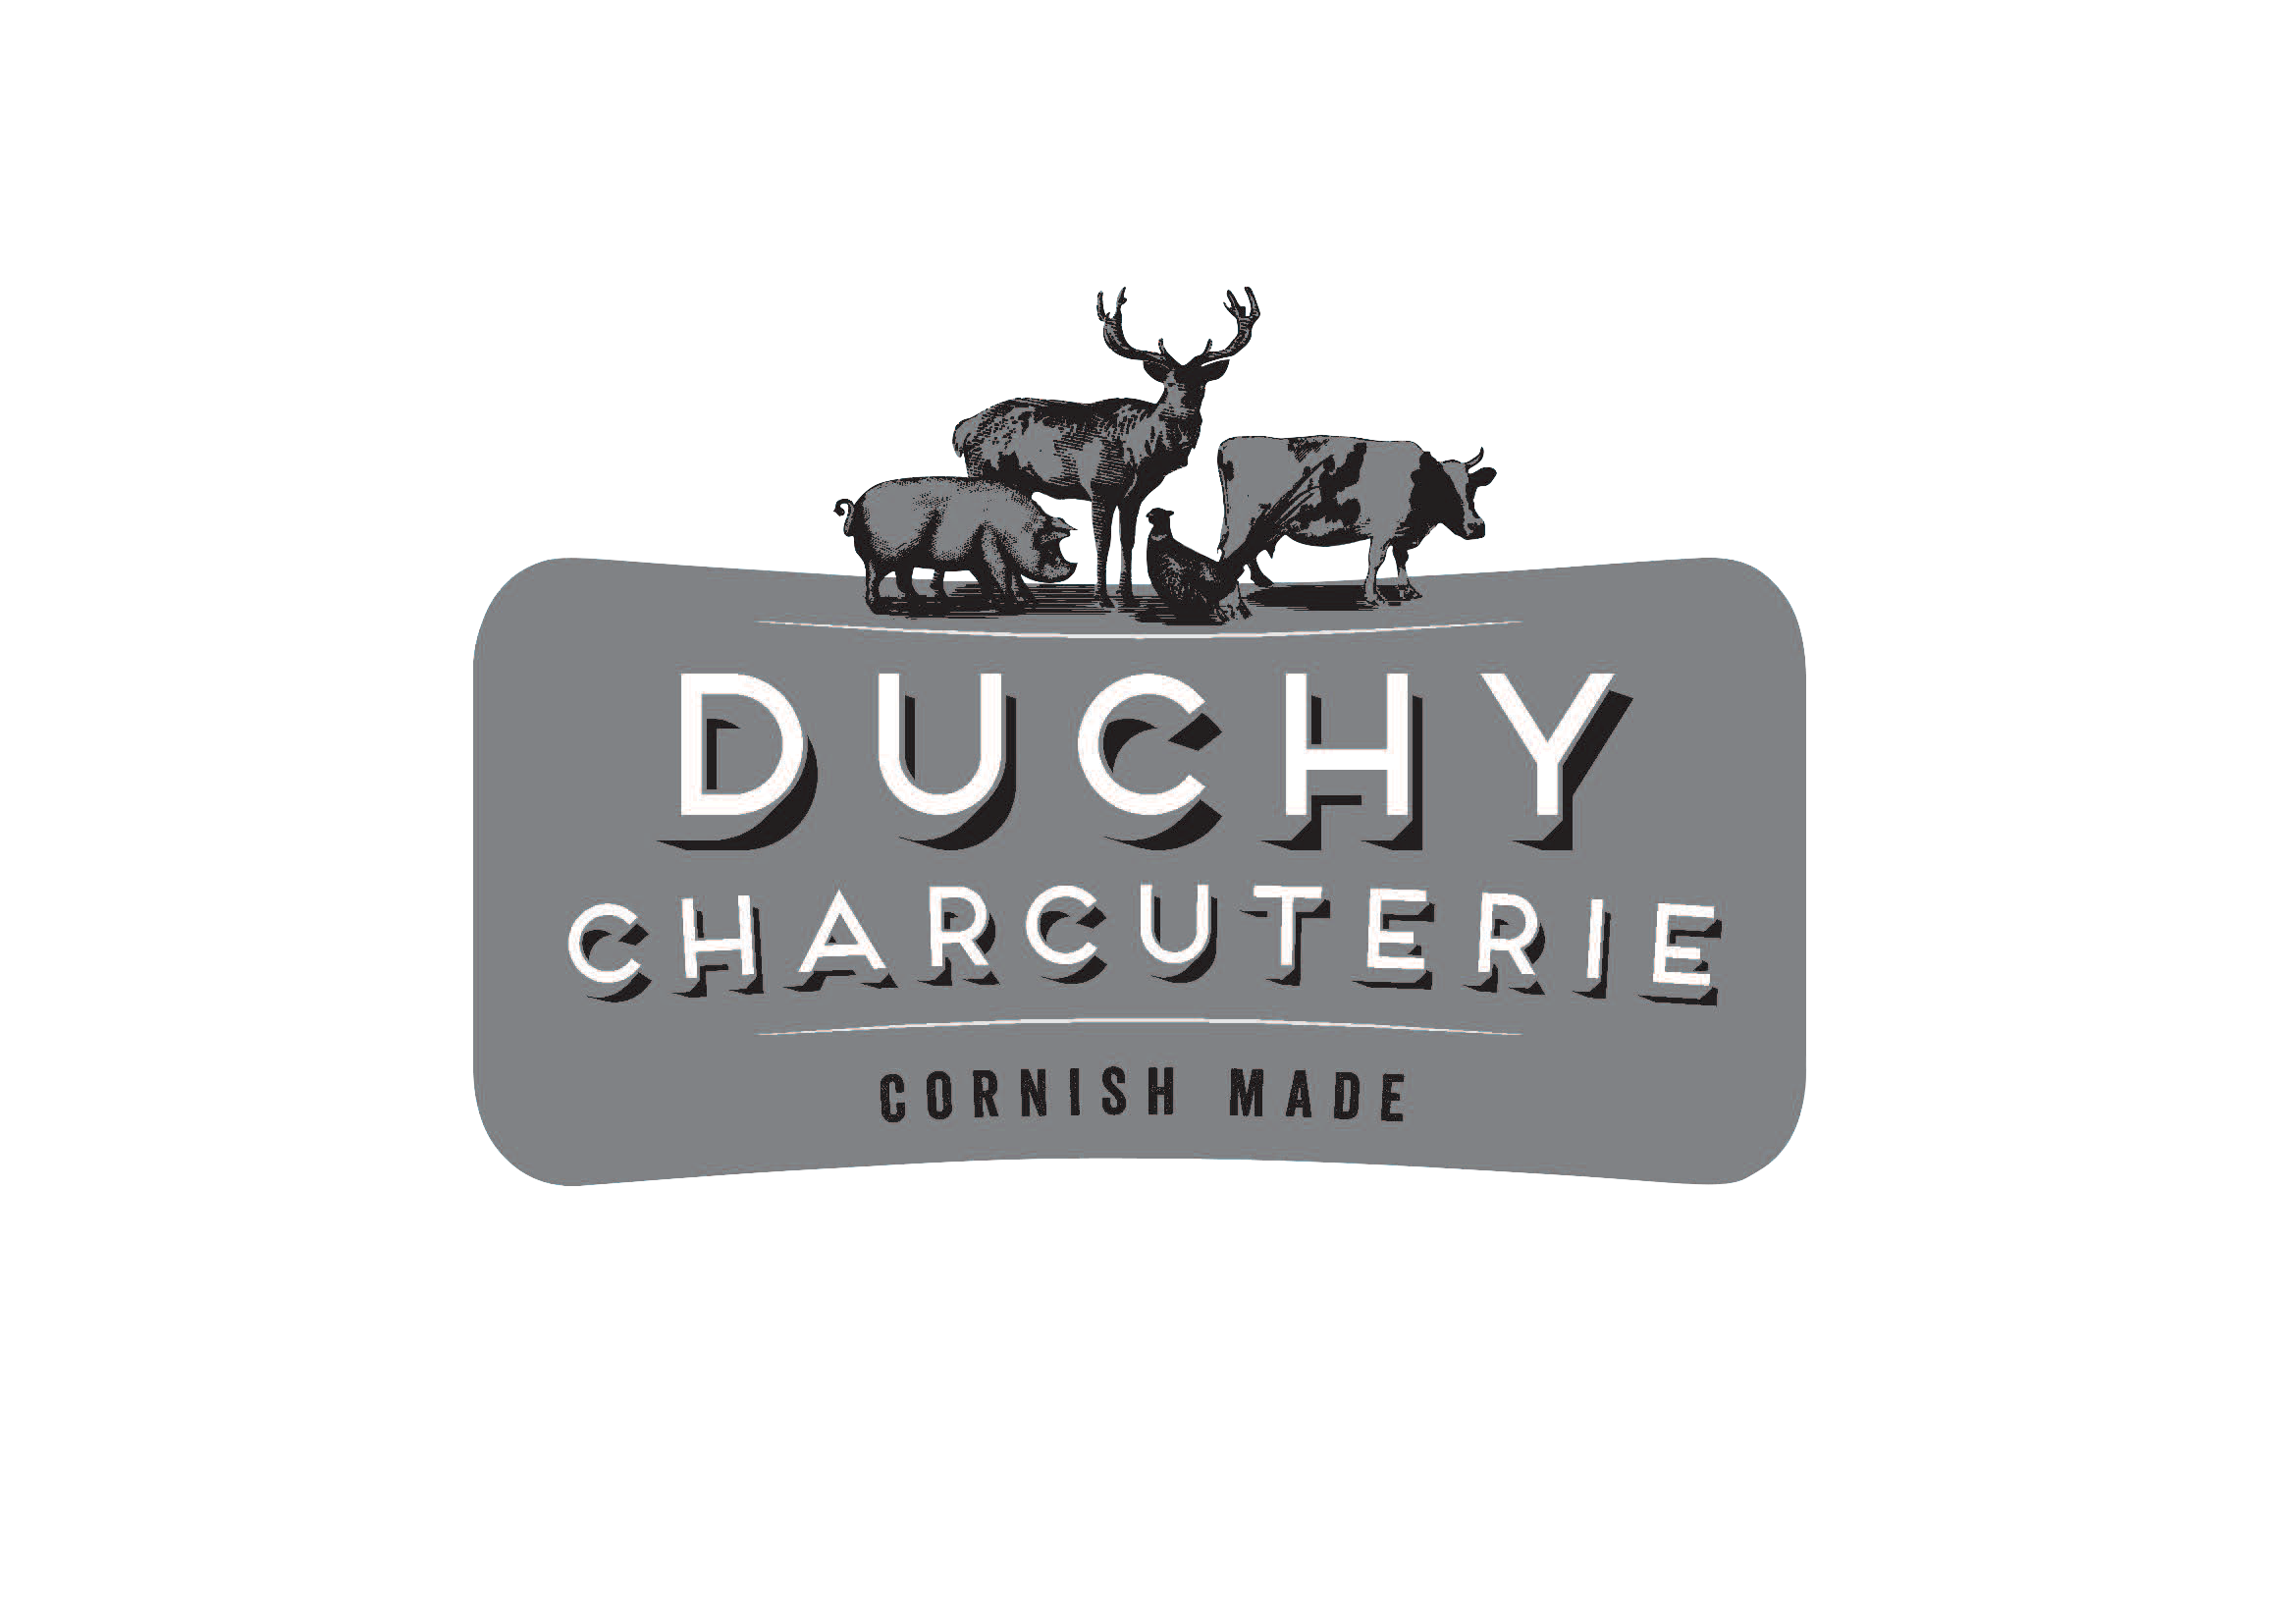 Duchy-Charcuterie-Mono.png